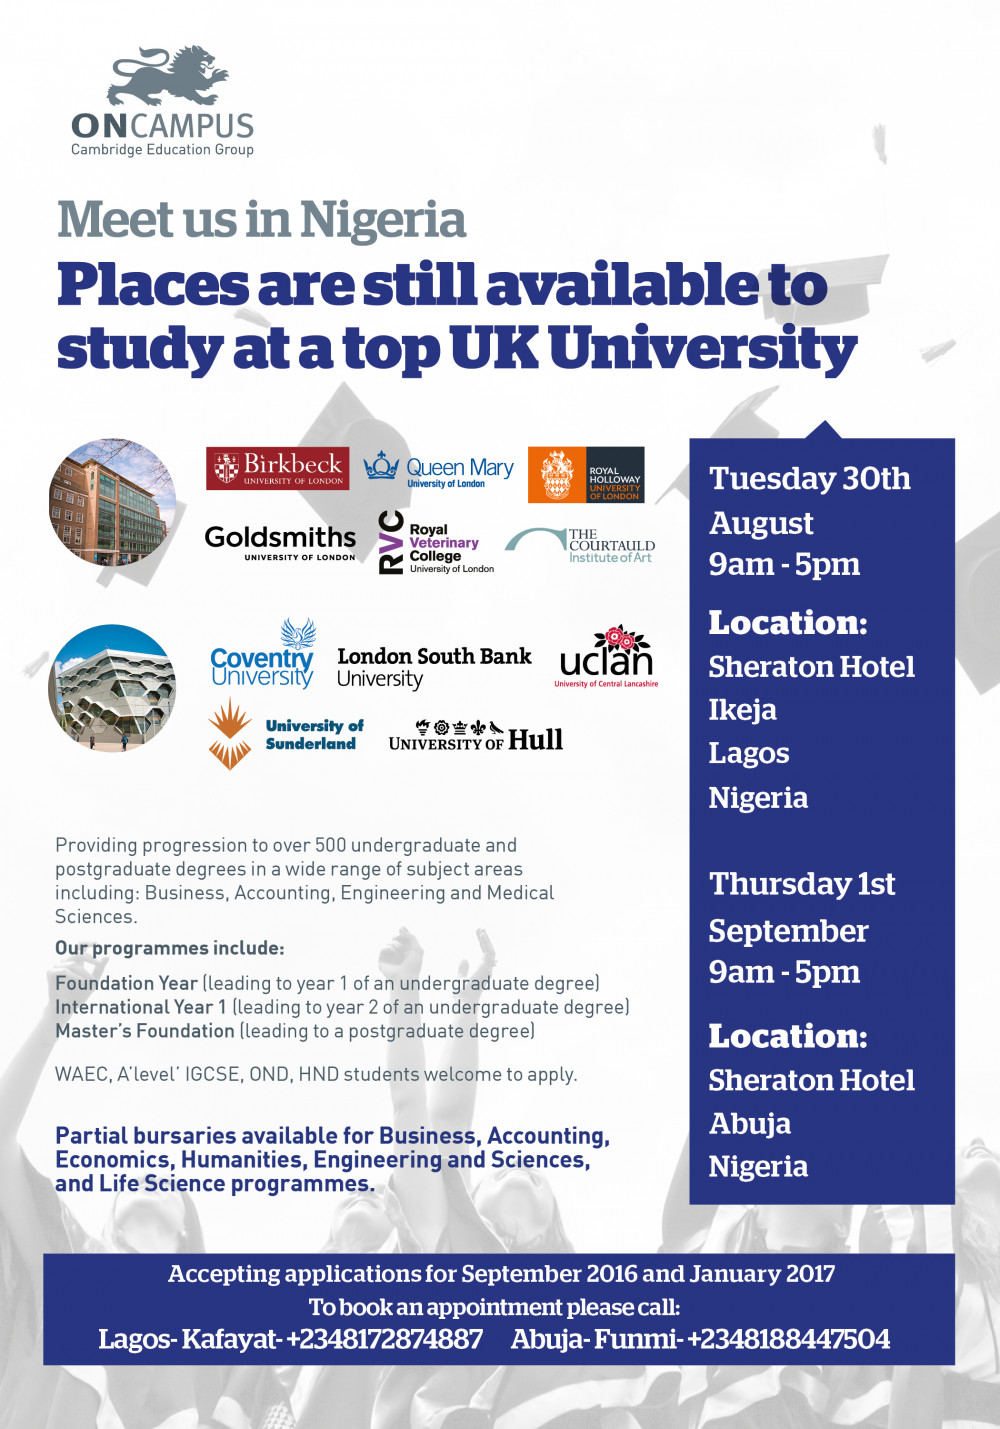 UK ONCAMPUS Advert - Larry Jasevicius Nigeria Visit